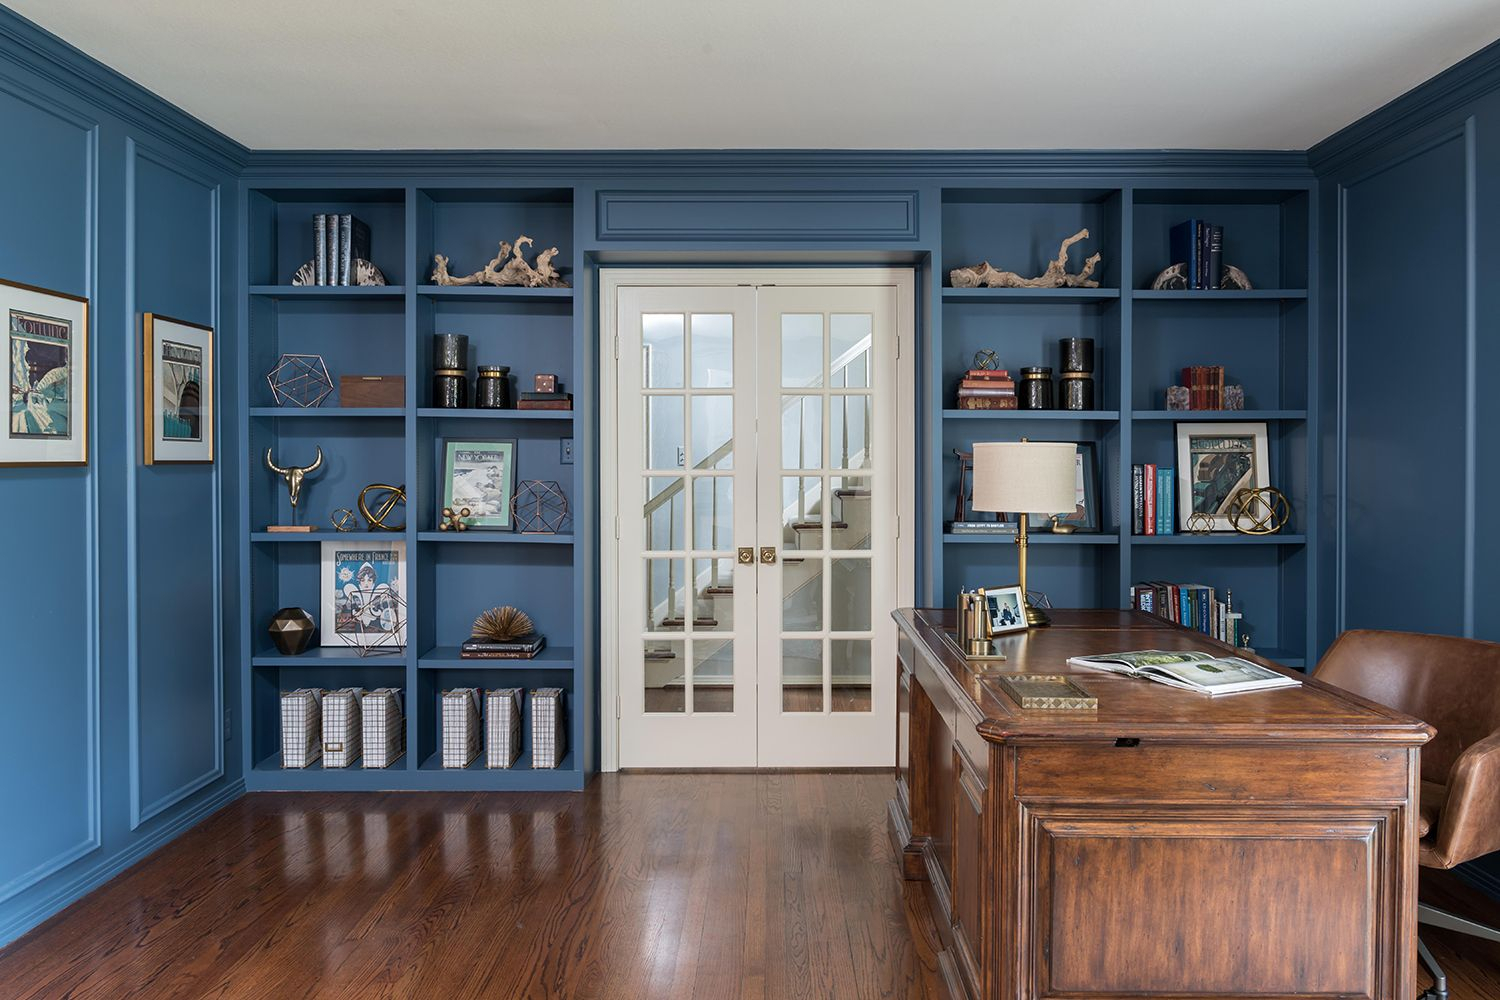 Inspiration about 25 Stylish Built In Bookshelves – Floor To Ceiling Shelving Within Most Recently Released Kara 4 Door Accent Cabinets (#16 of 20)